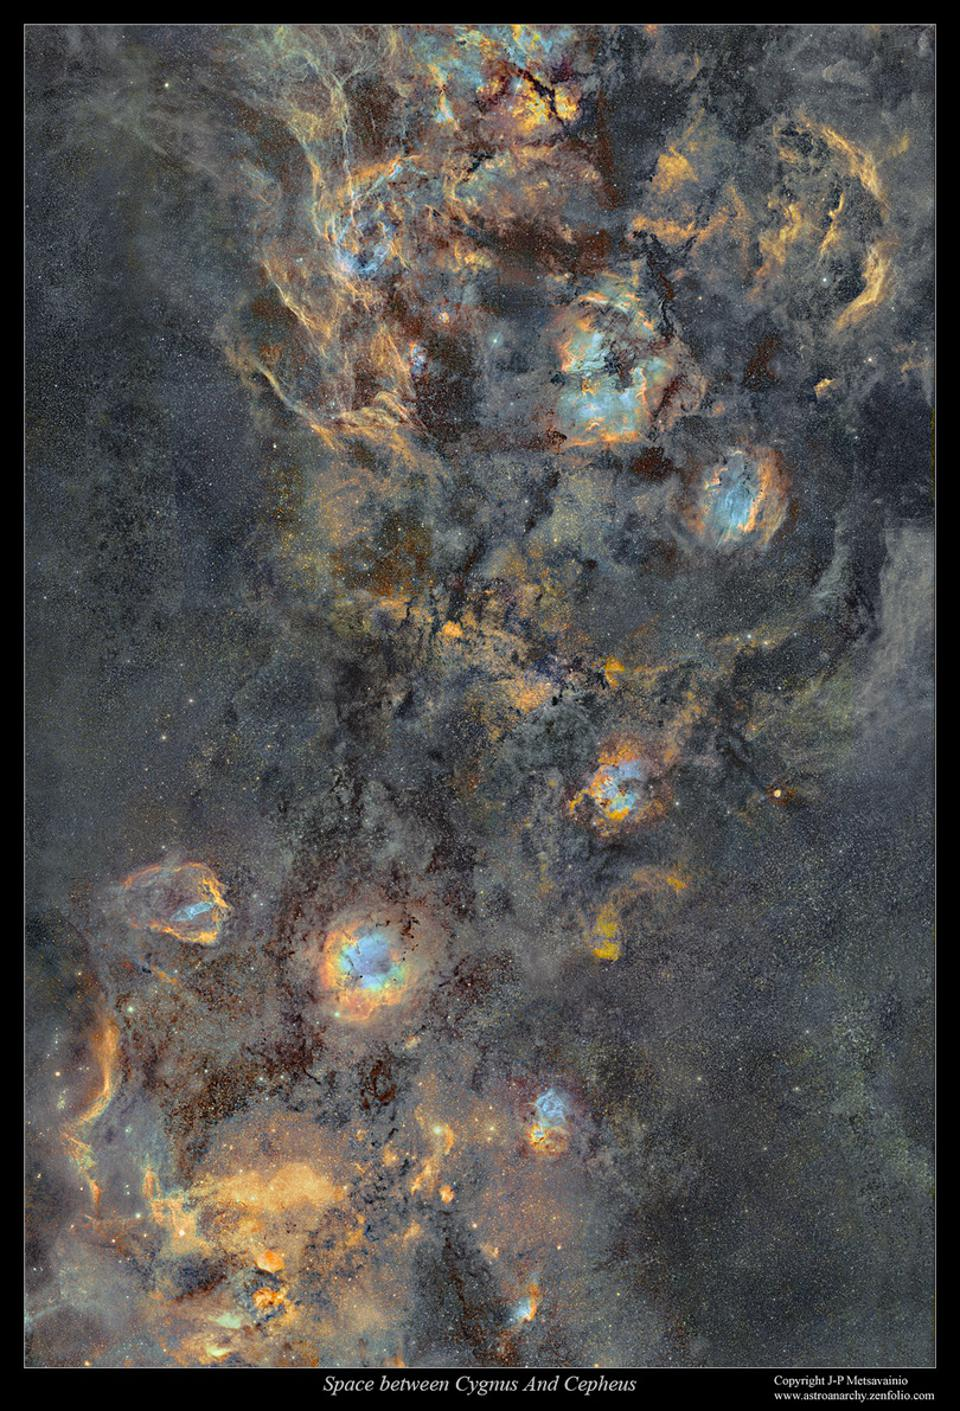 This mosaic shows the region between the constellations of Cygnus and Cepheus.